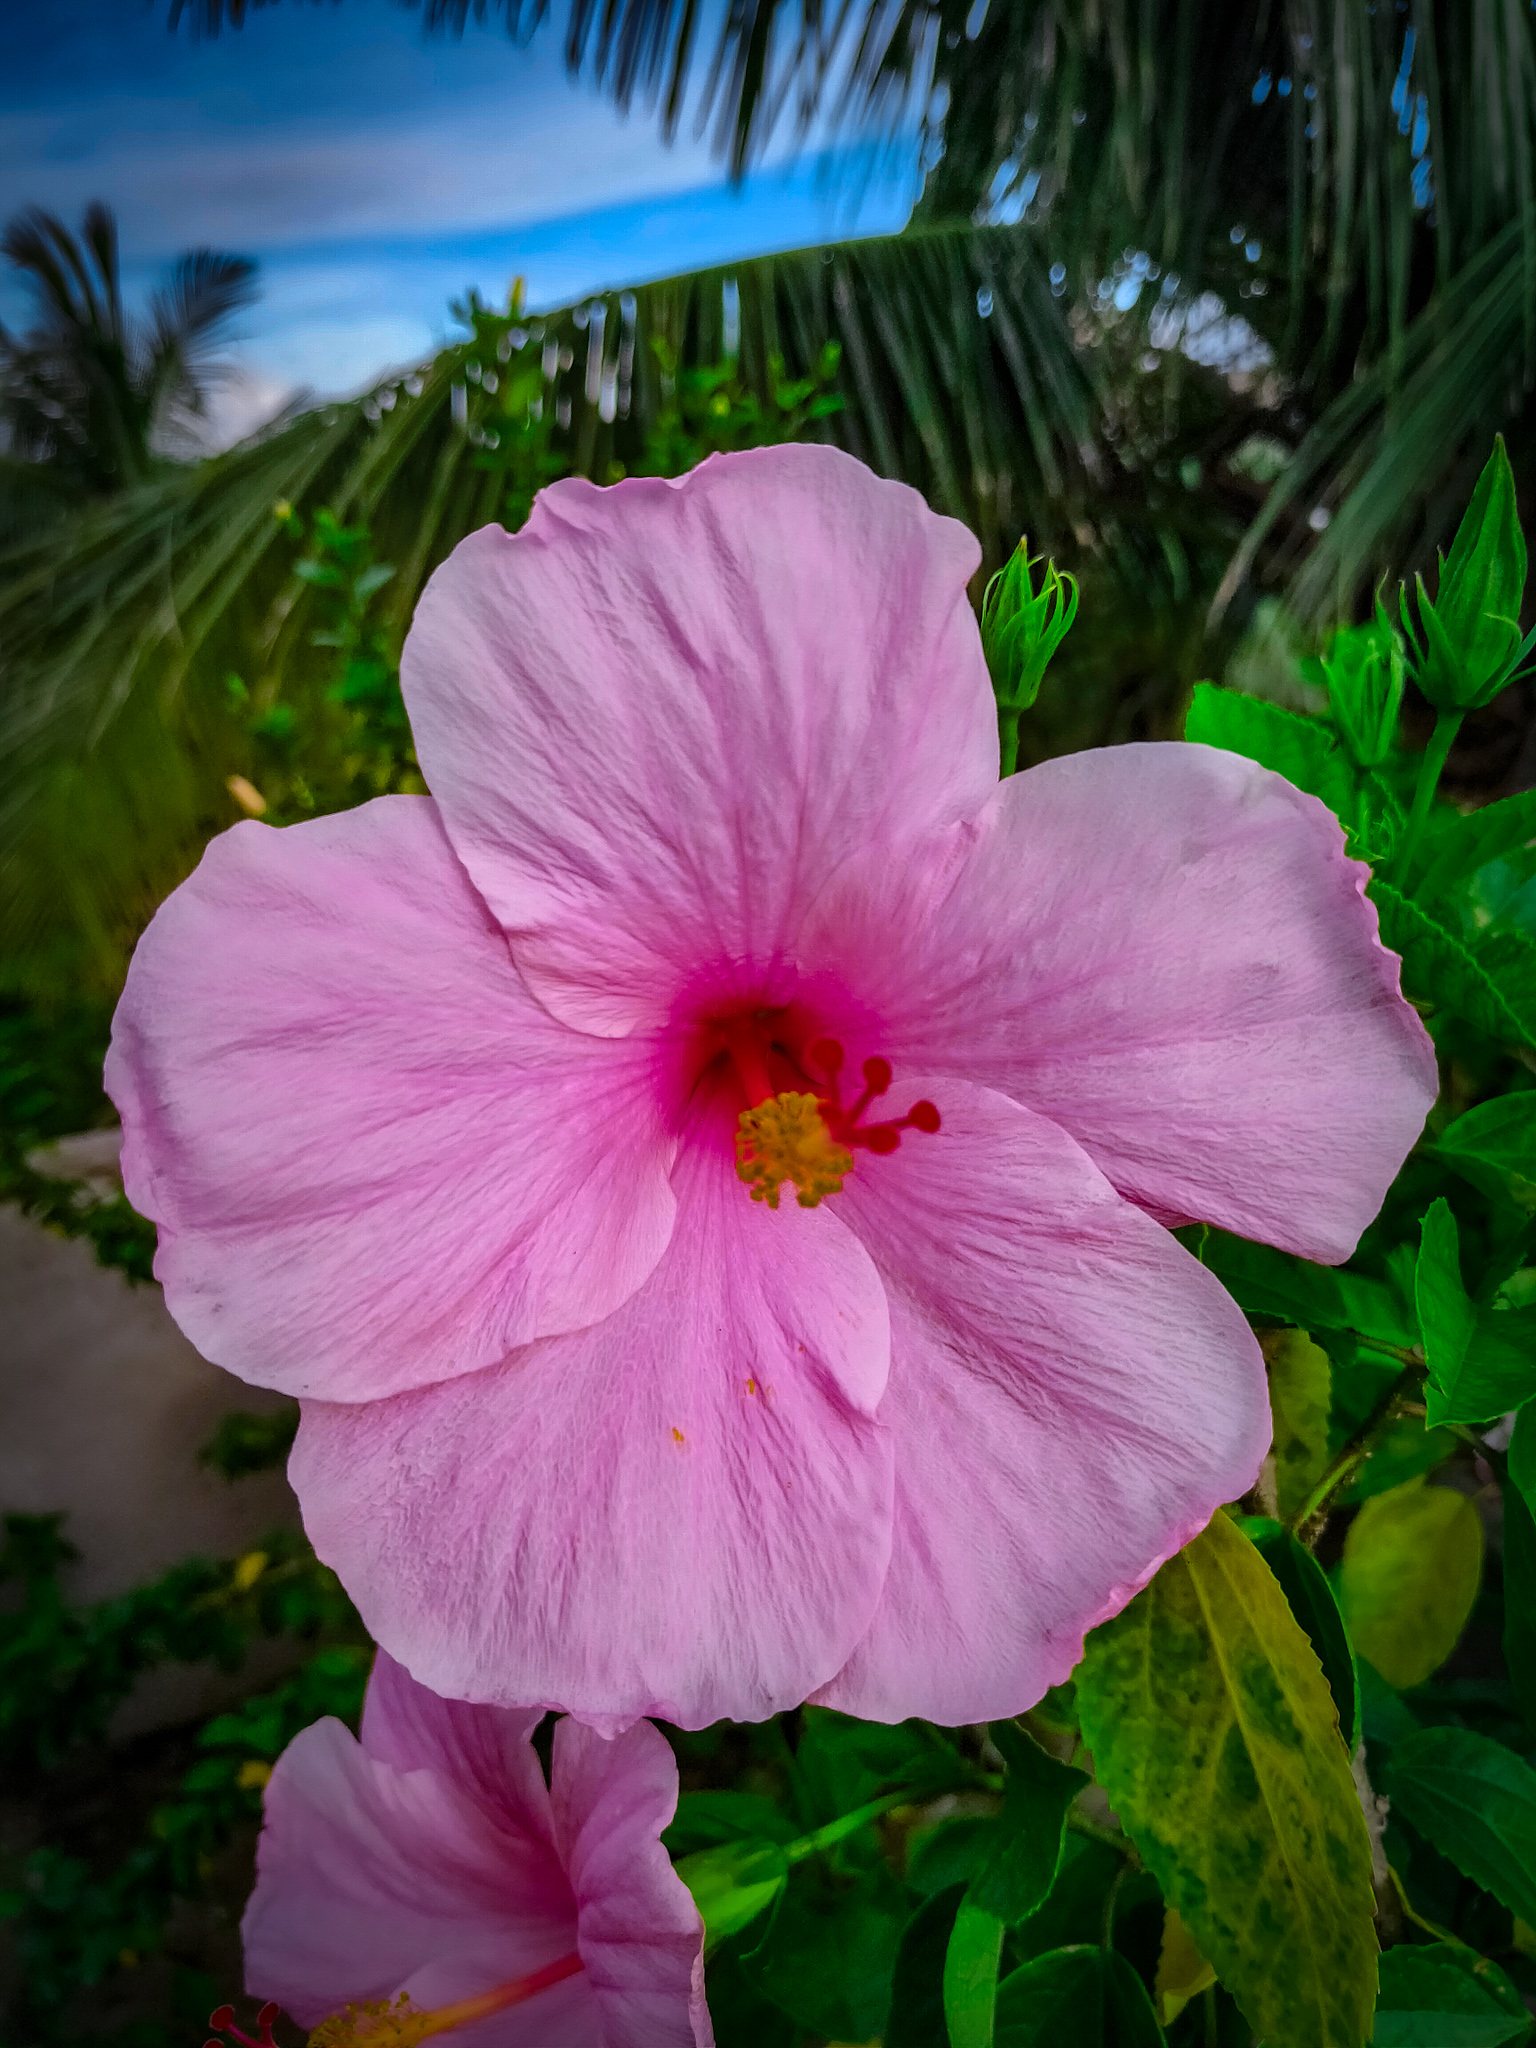 A beautiful pink hibiscus flower